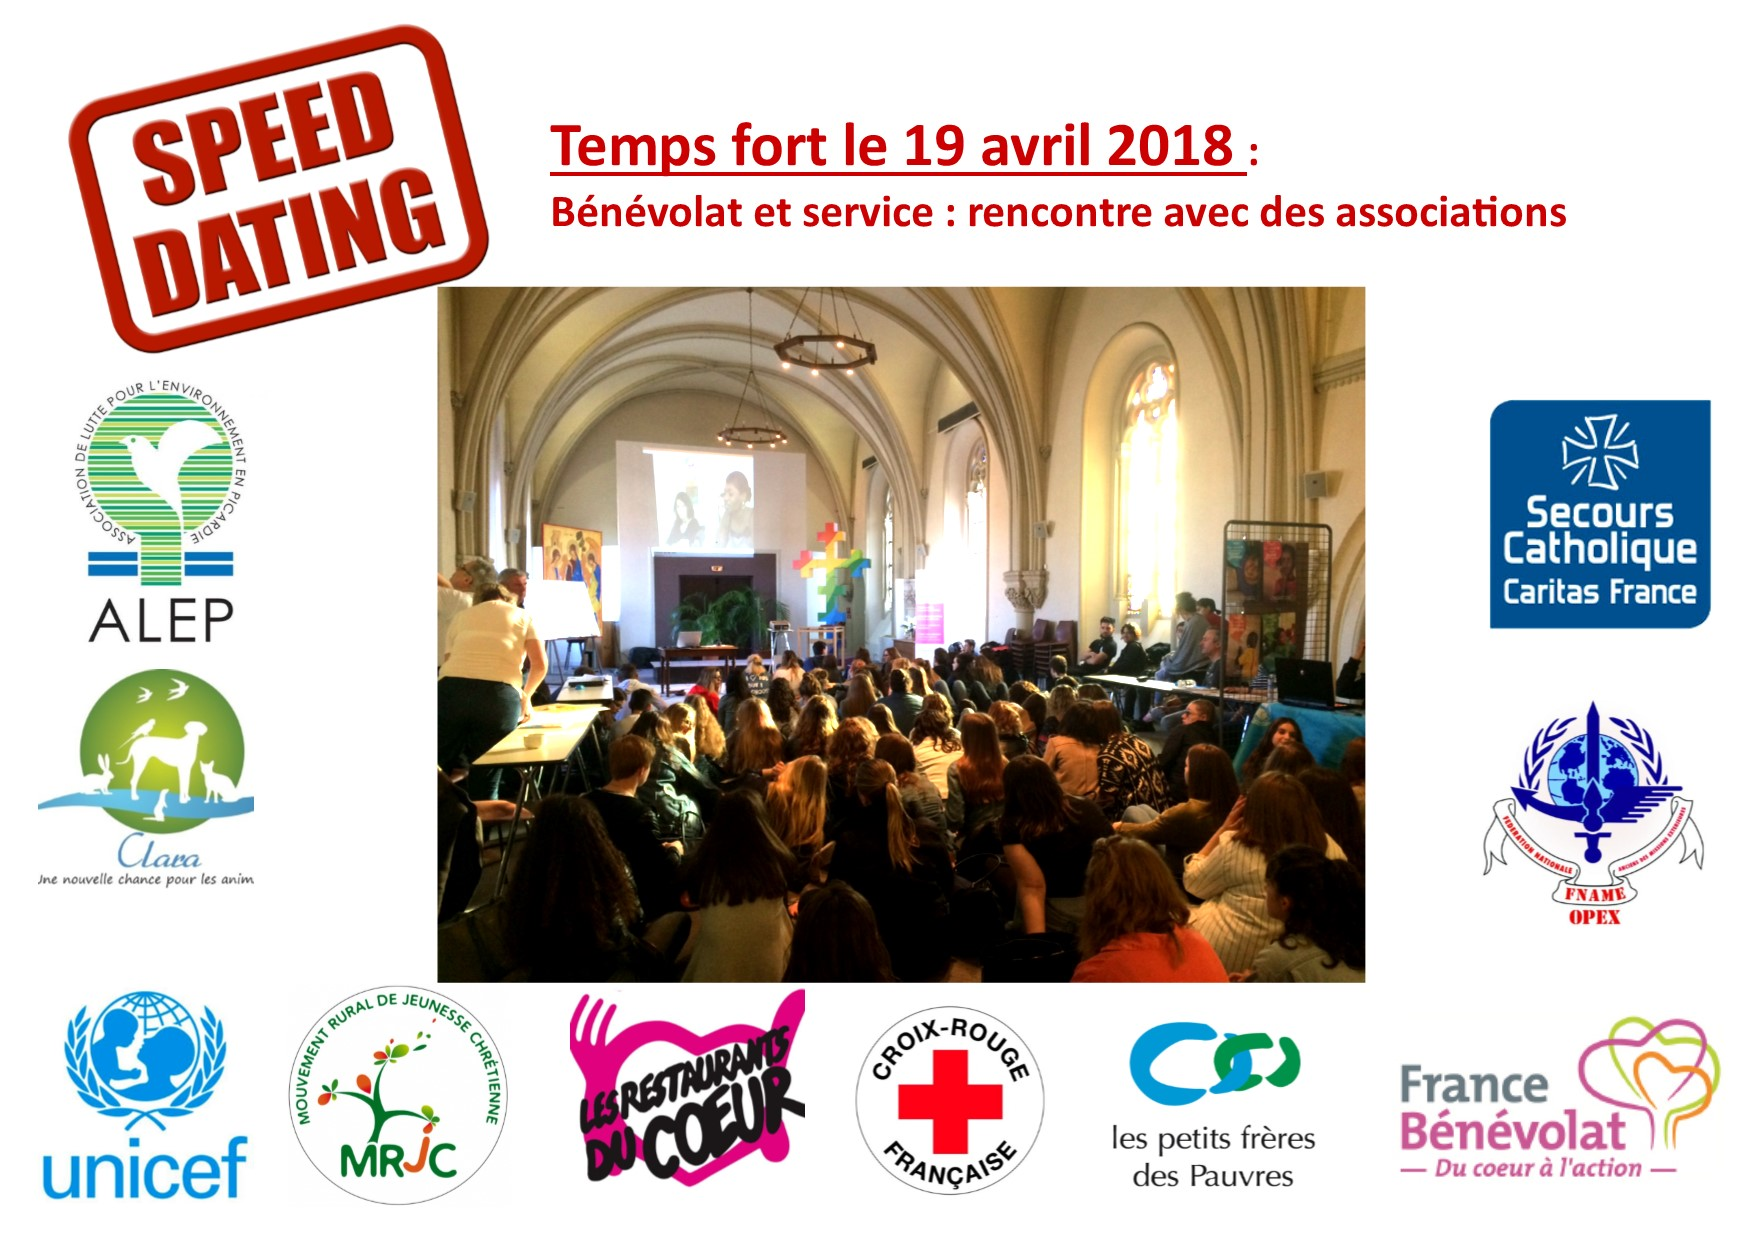 TEMPS FORT 19 AVRIL 2018 SPEED DATING ASSOCIATIF